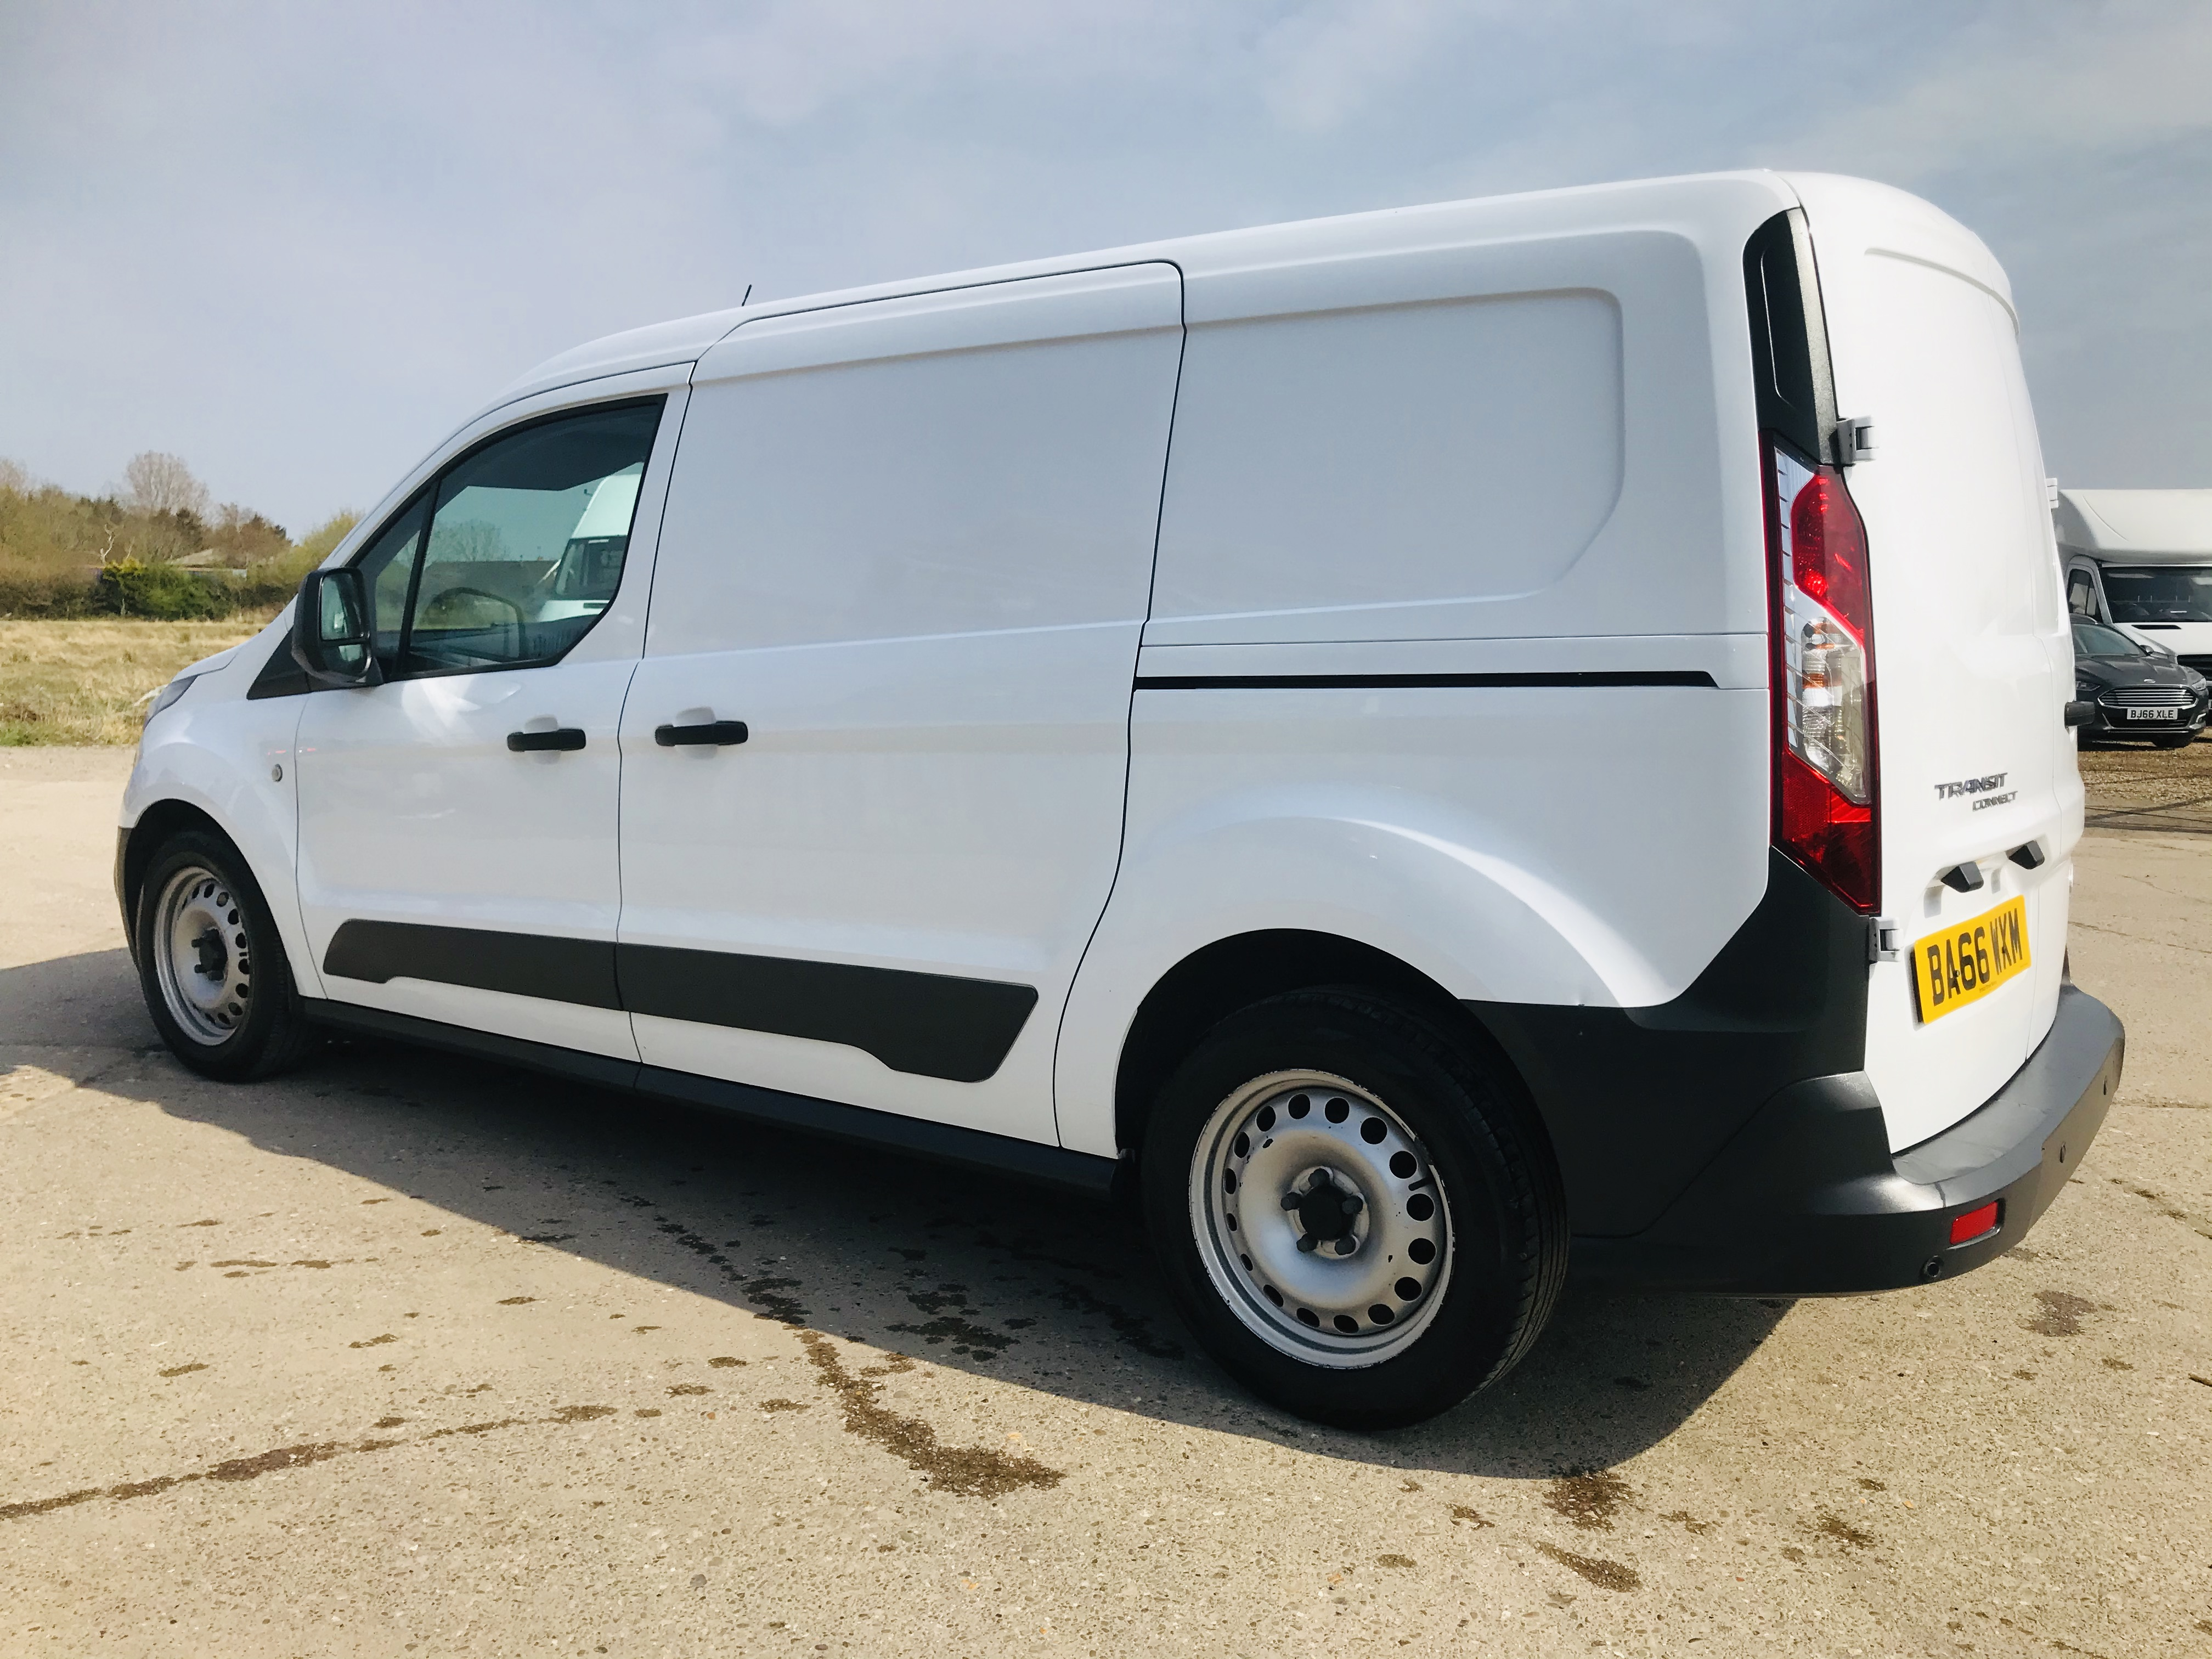 """ON SALE FORD TRANSIT CONNECT 1.6TDCI ECO-TECH 'LWB' 2017 REG - 1 OWNER - FSH - EURO 6""""ULEZ COMPLIANT - Image 9 of 30"""